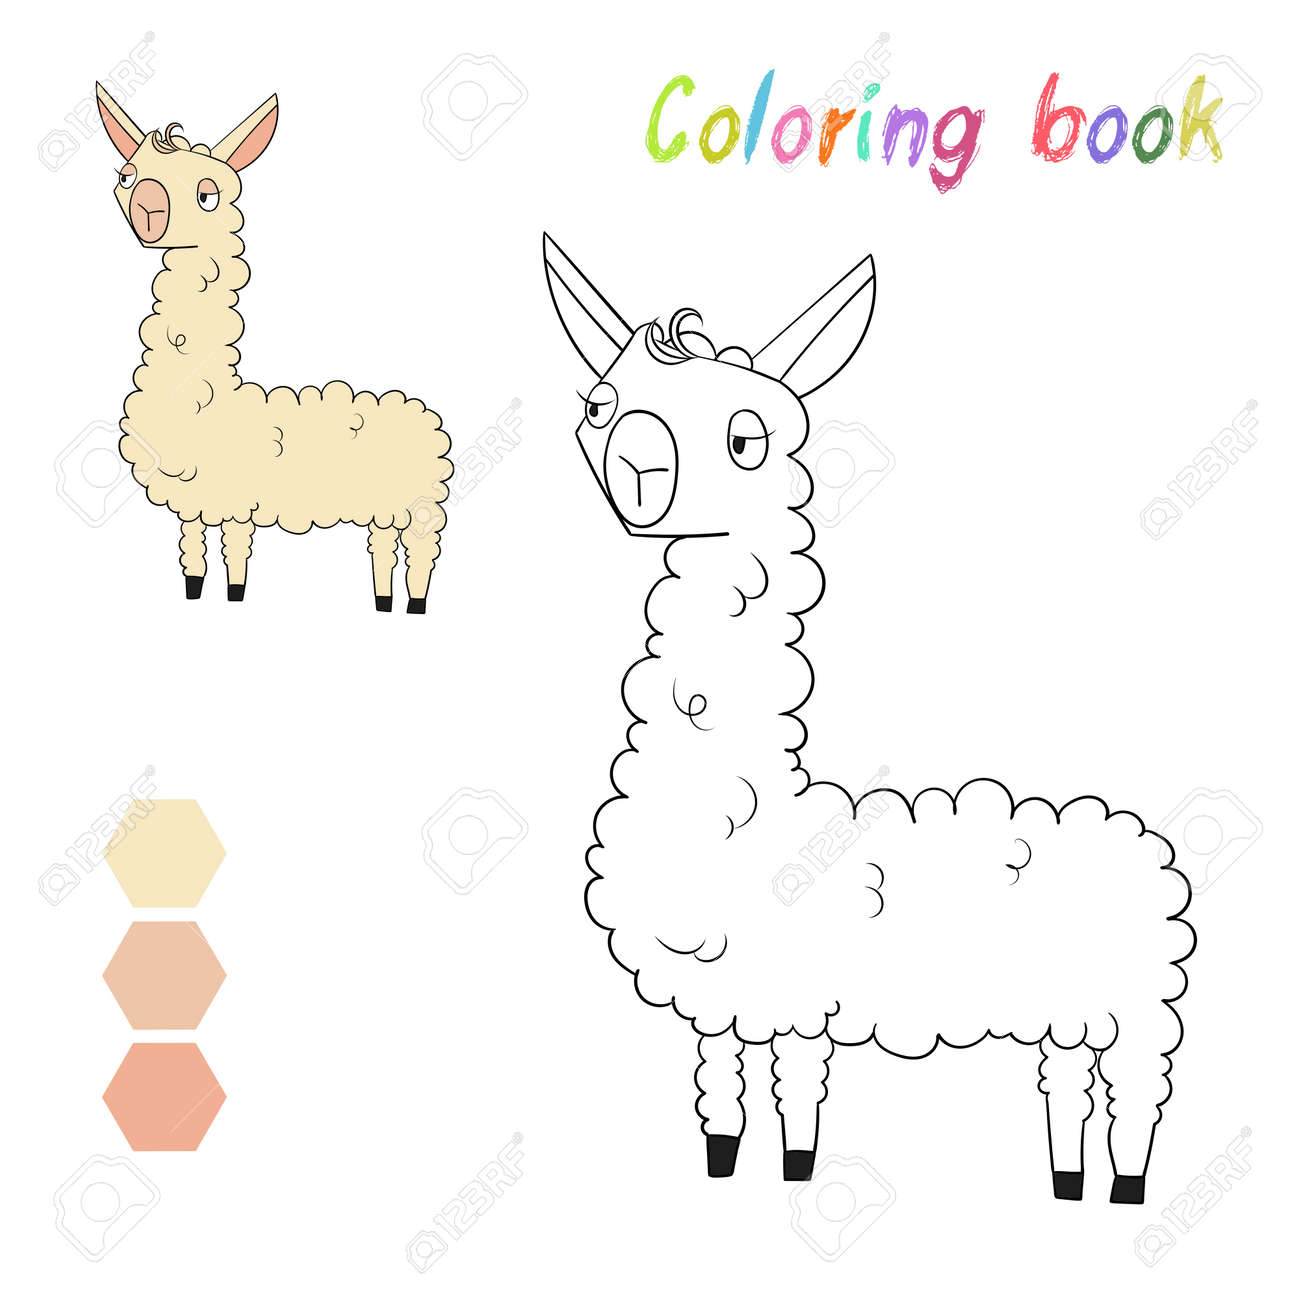 Coloring Book Lama Kids Layout For Game Doodle Cartoon Hand Drawn Vector Illustration Stock